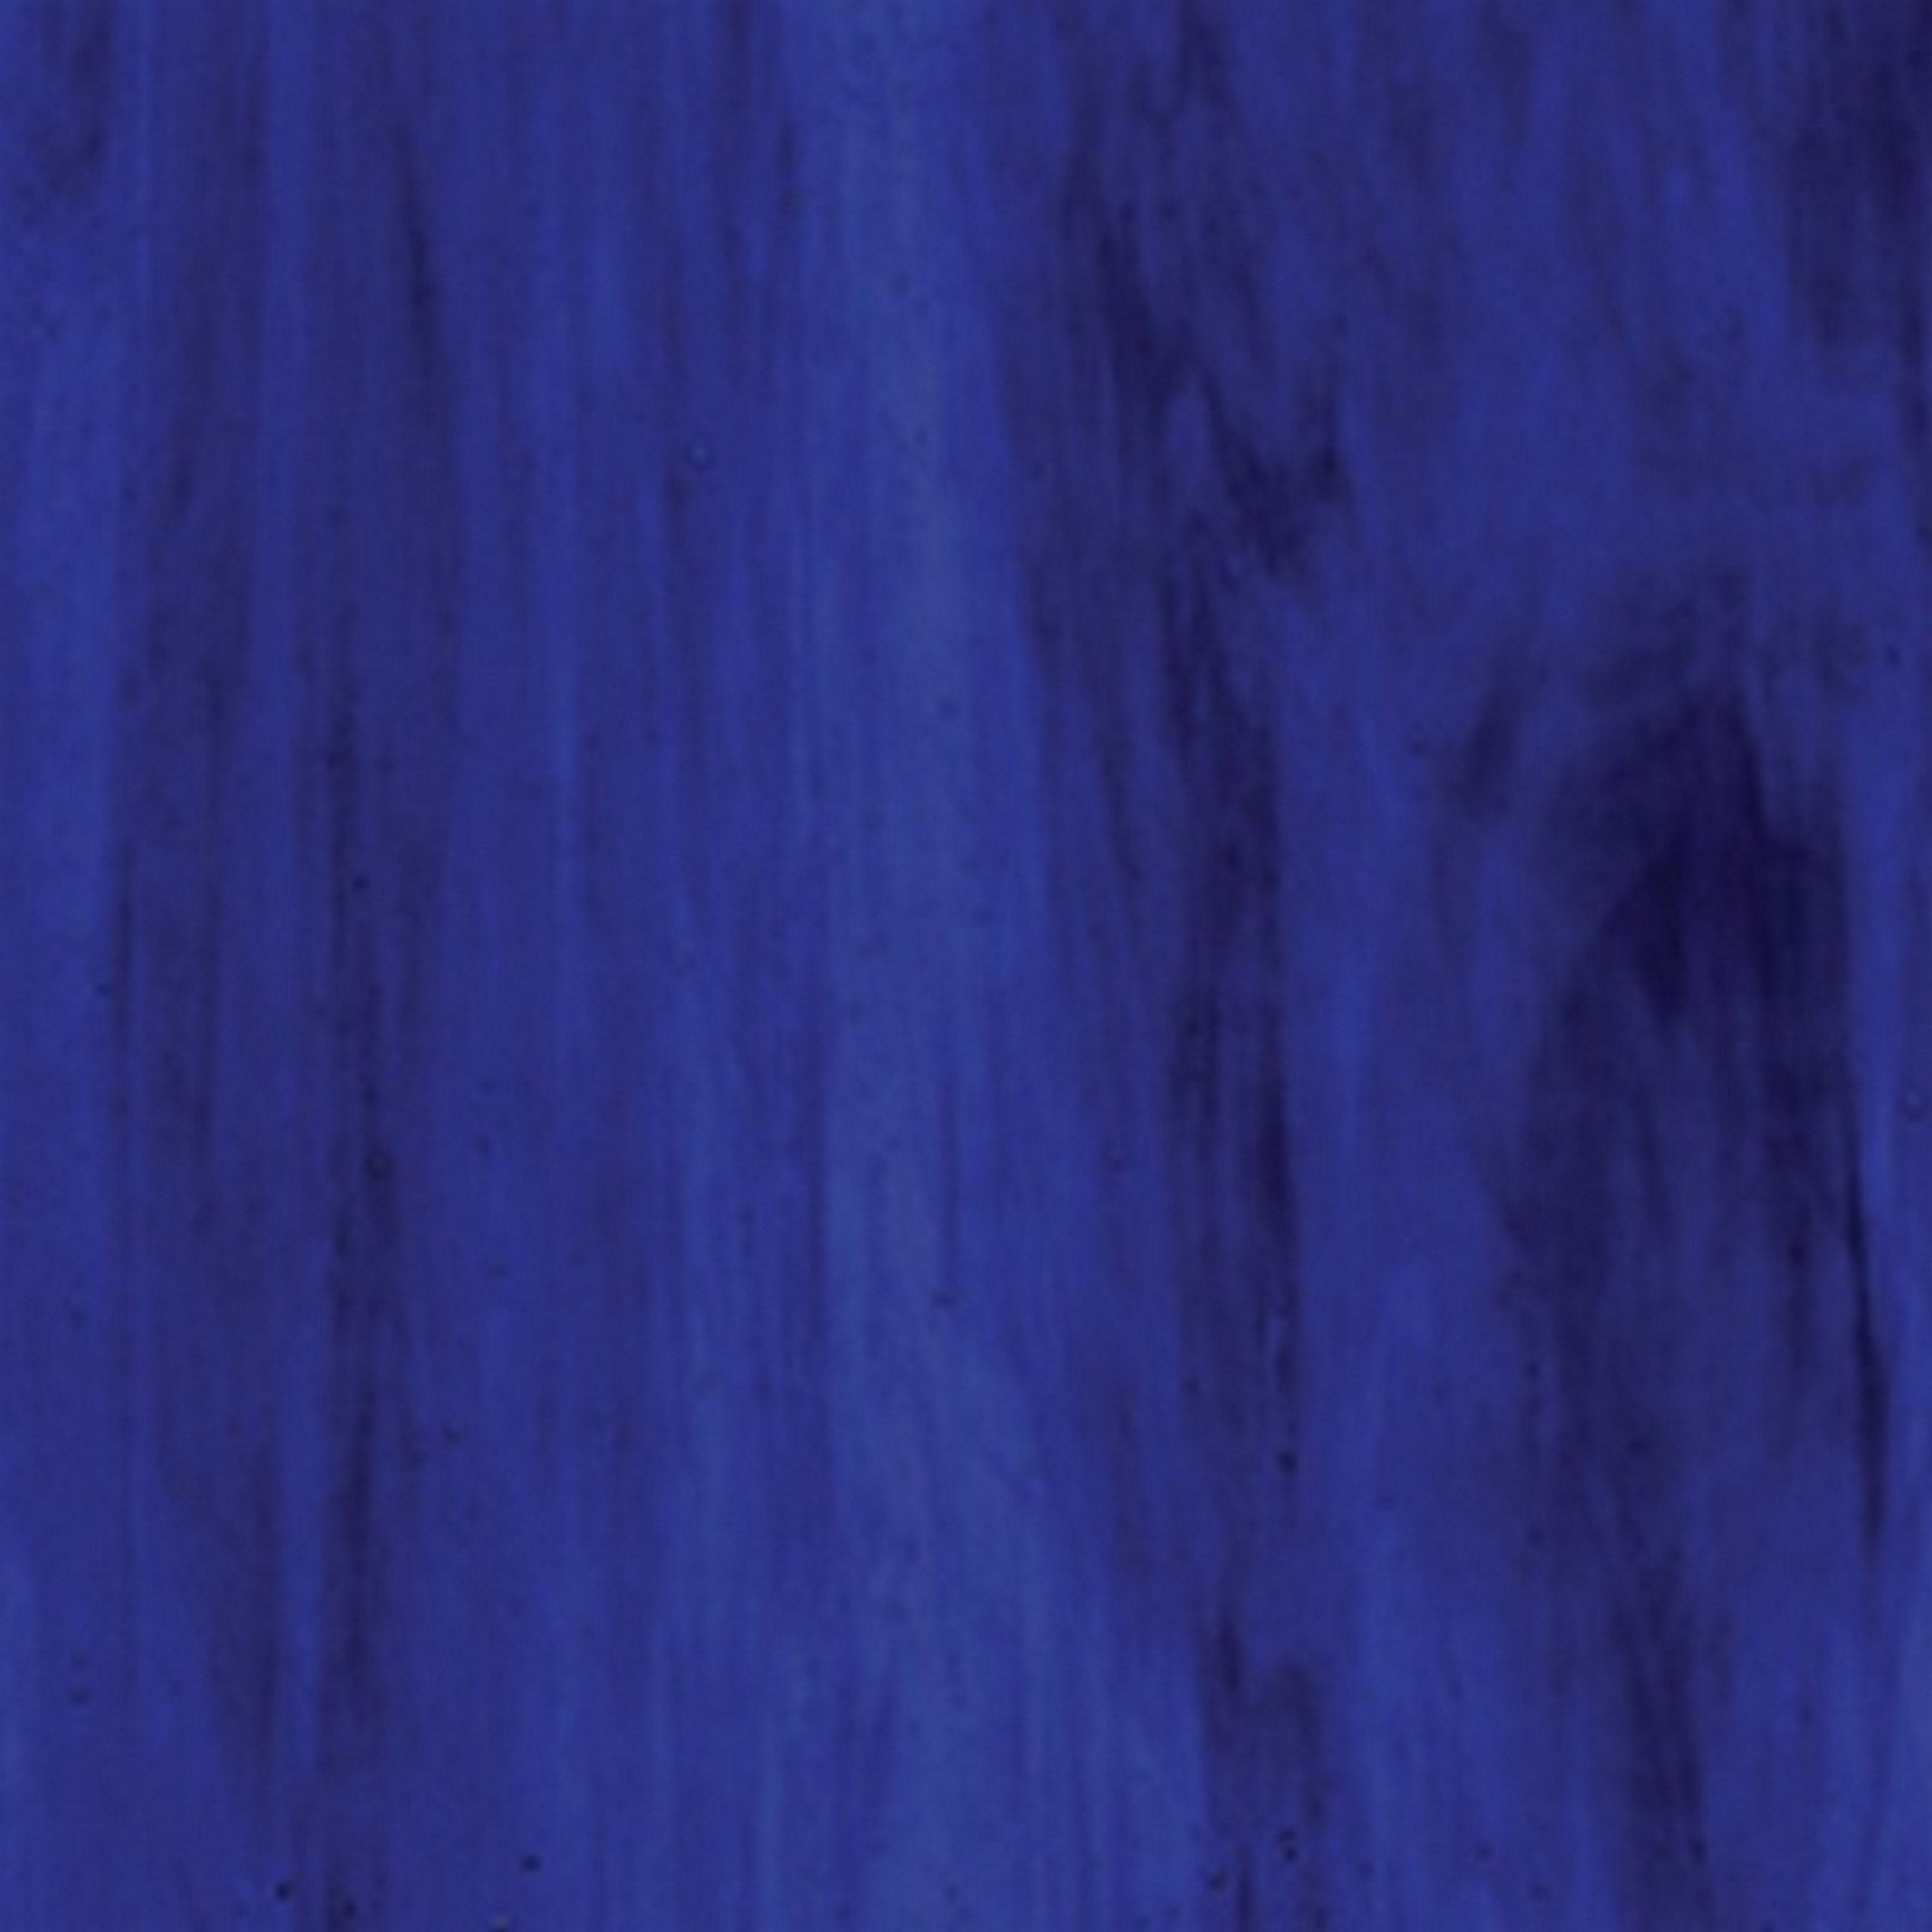 WISSMACH BLUE WITH PURPLE STREAKS (Large 12